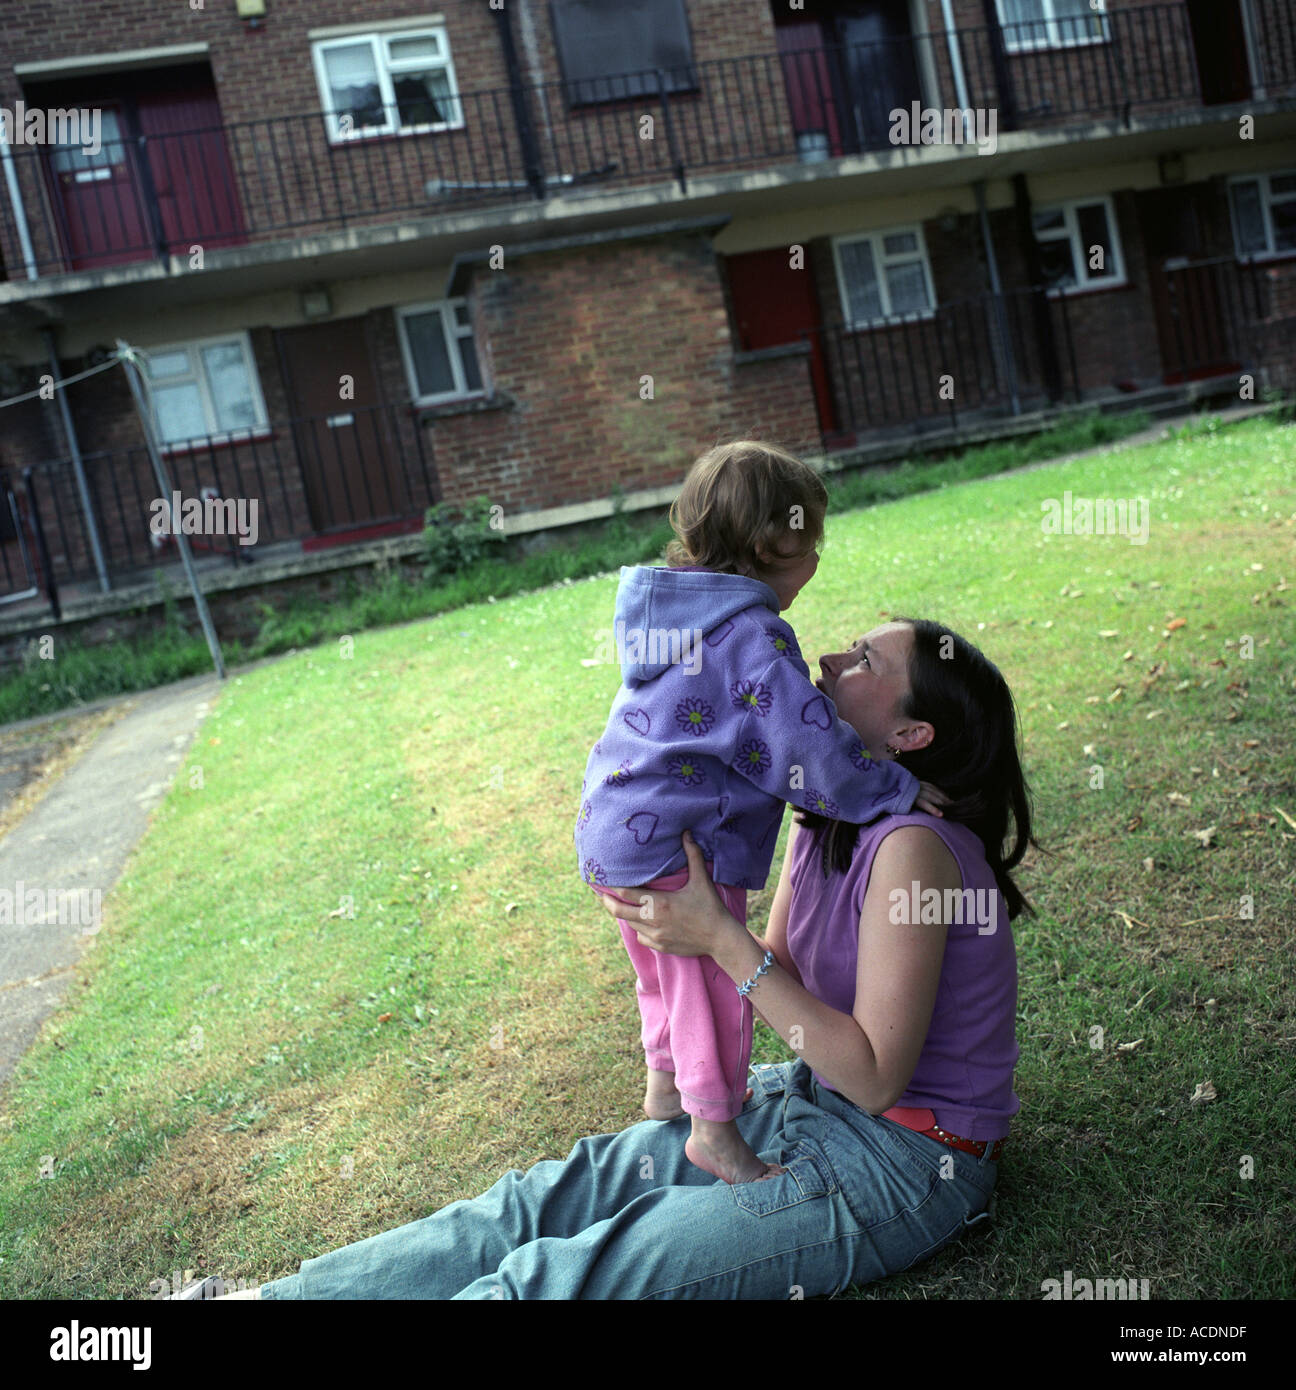 A young single mother with her daughter in a council estate, Bristol, UK. - Stock Image